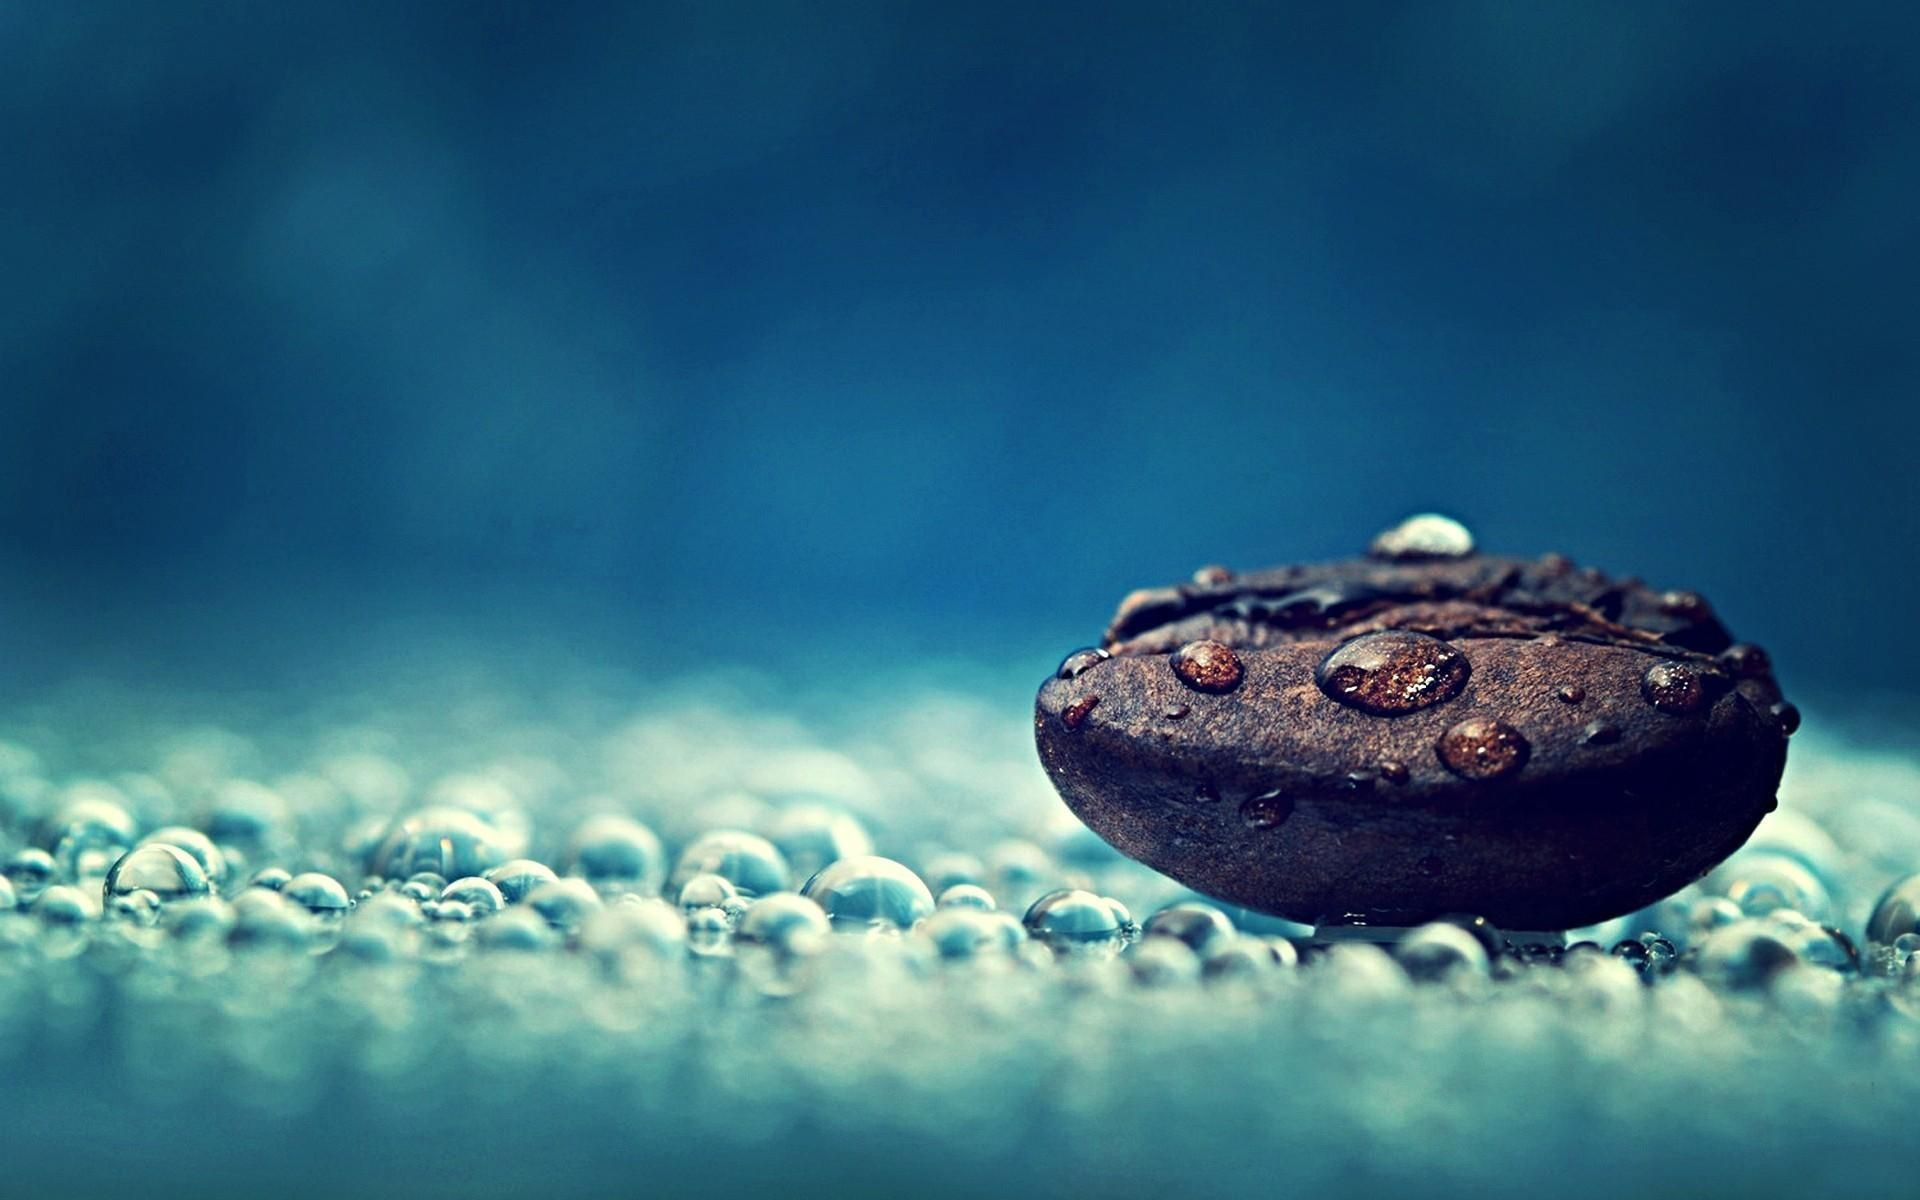 Water Drops Relaxation Coffee Beans Macro Relaxing Hd Wallpapers Desktop Backgrounds Mob Macro Photography Wallpaper Photography Wallpaper Coffee Photography